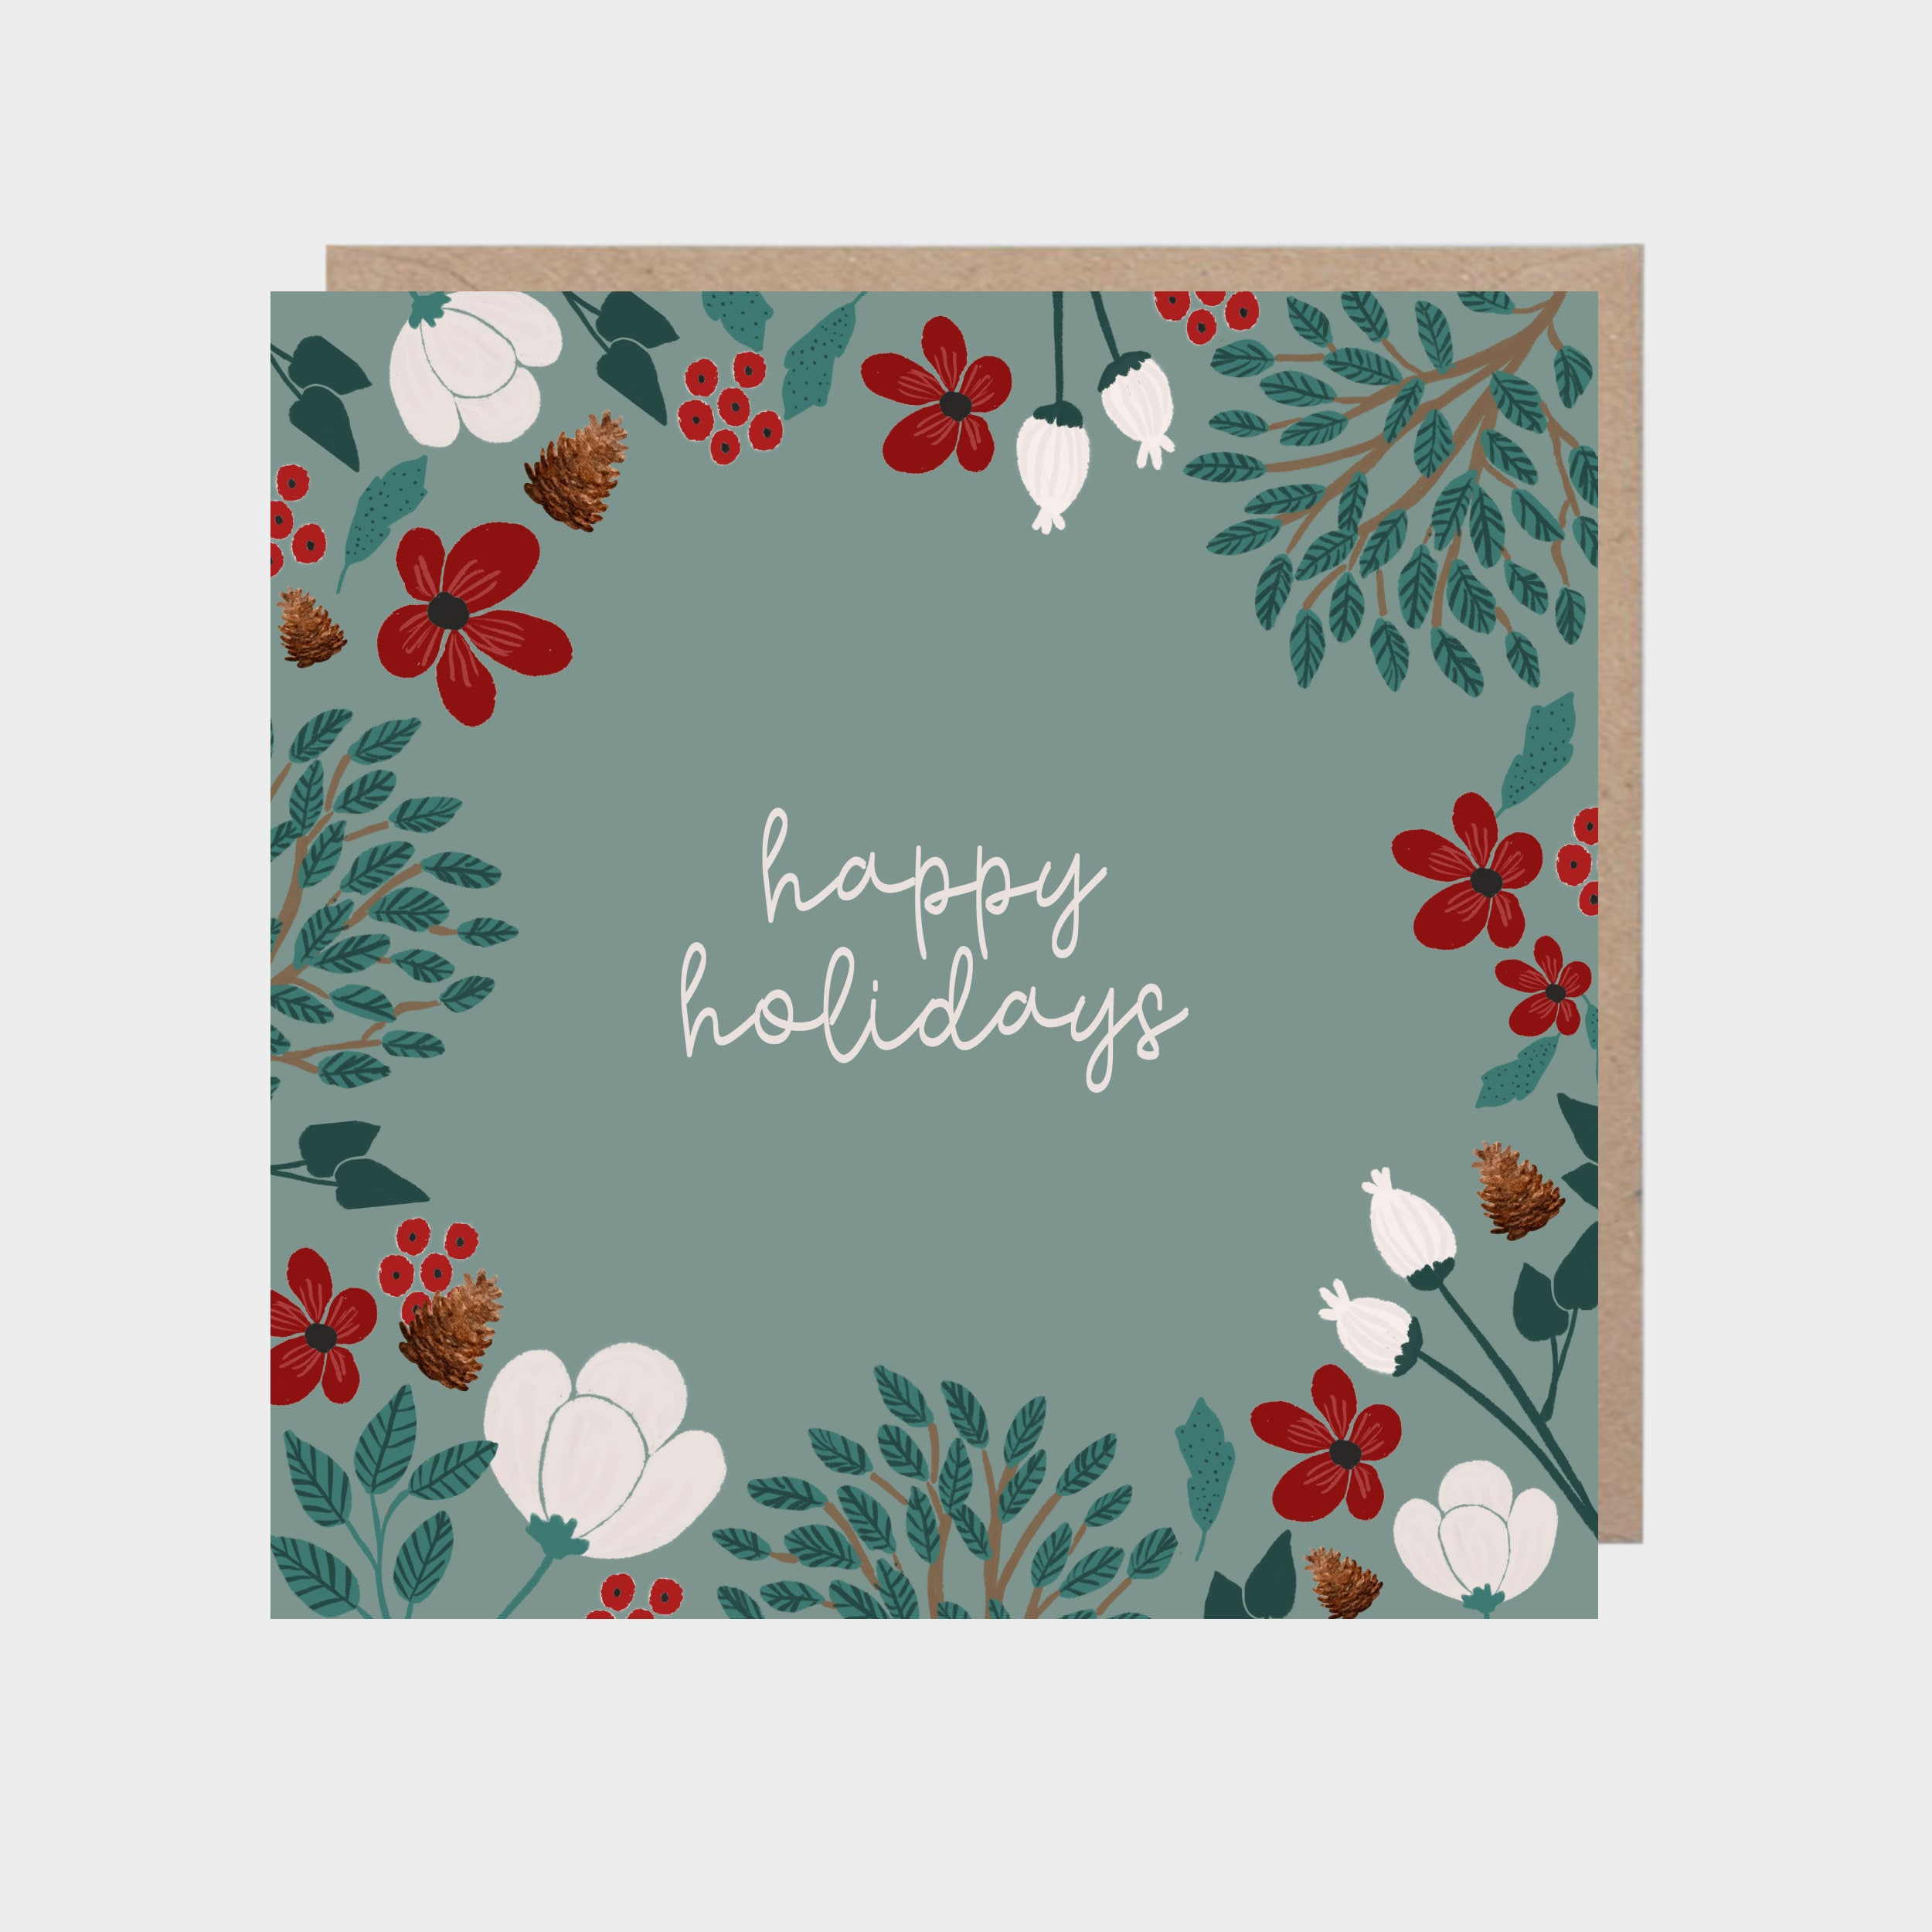 Square green card with a border of winter foliage and flowers, with a brown kraft envelope